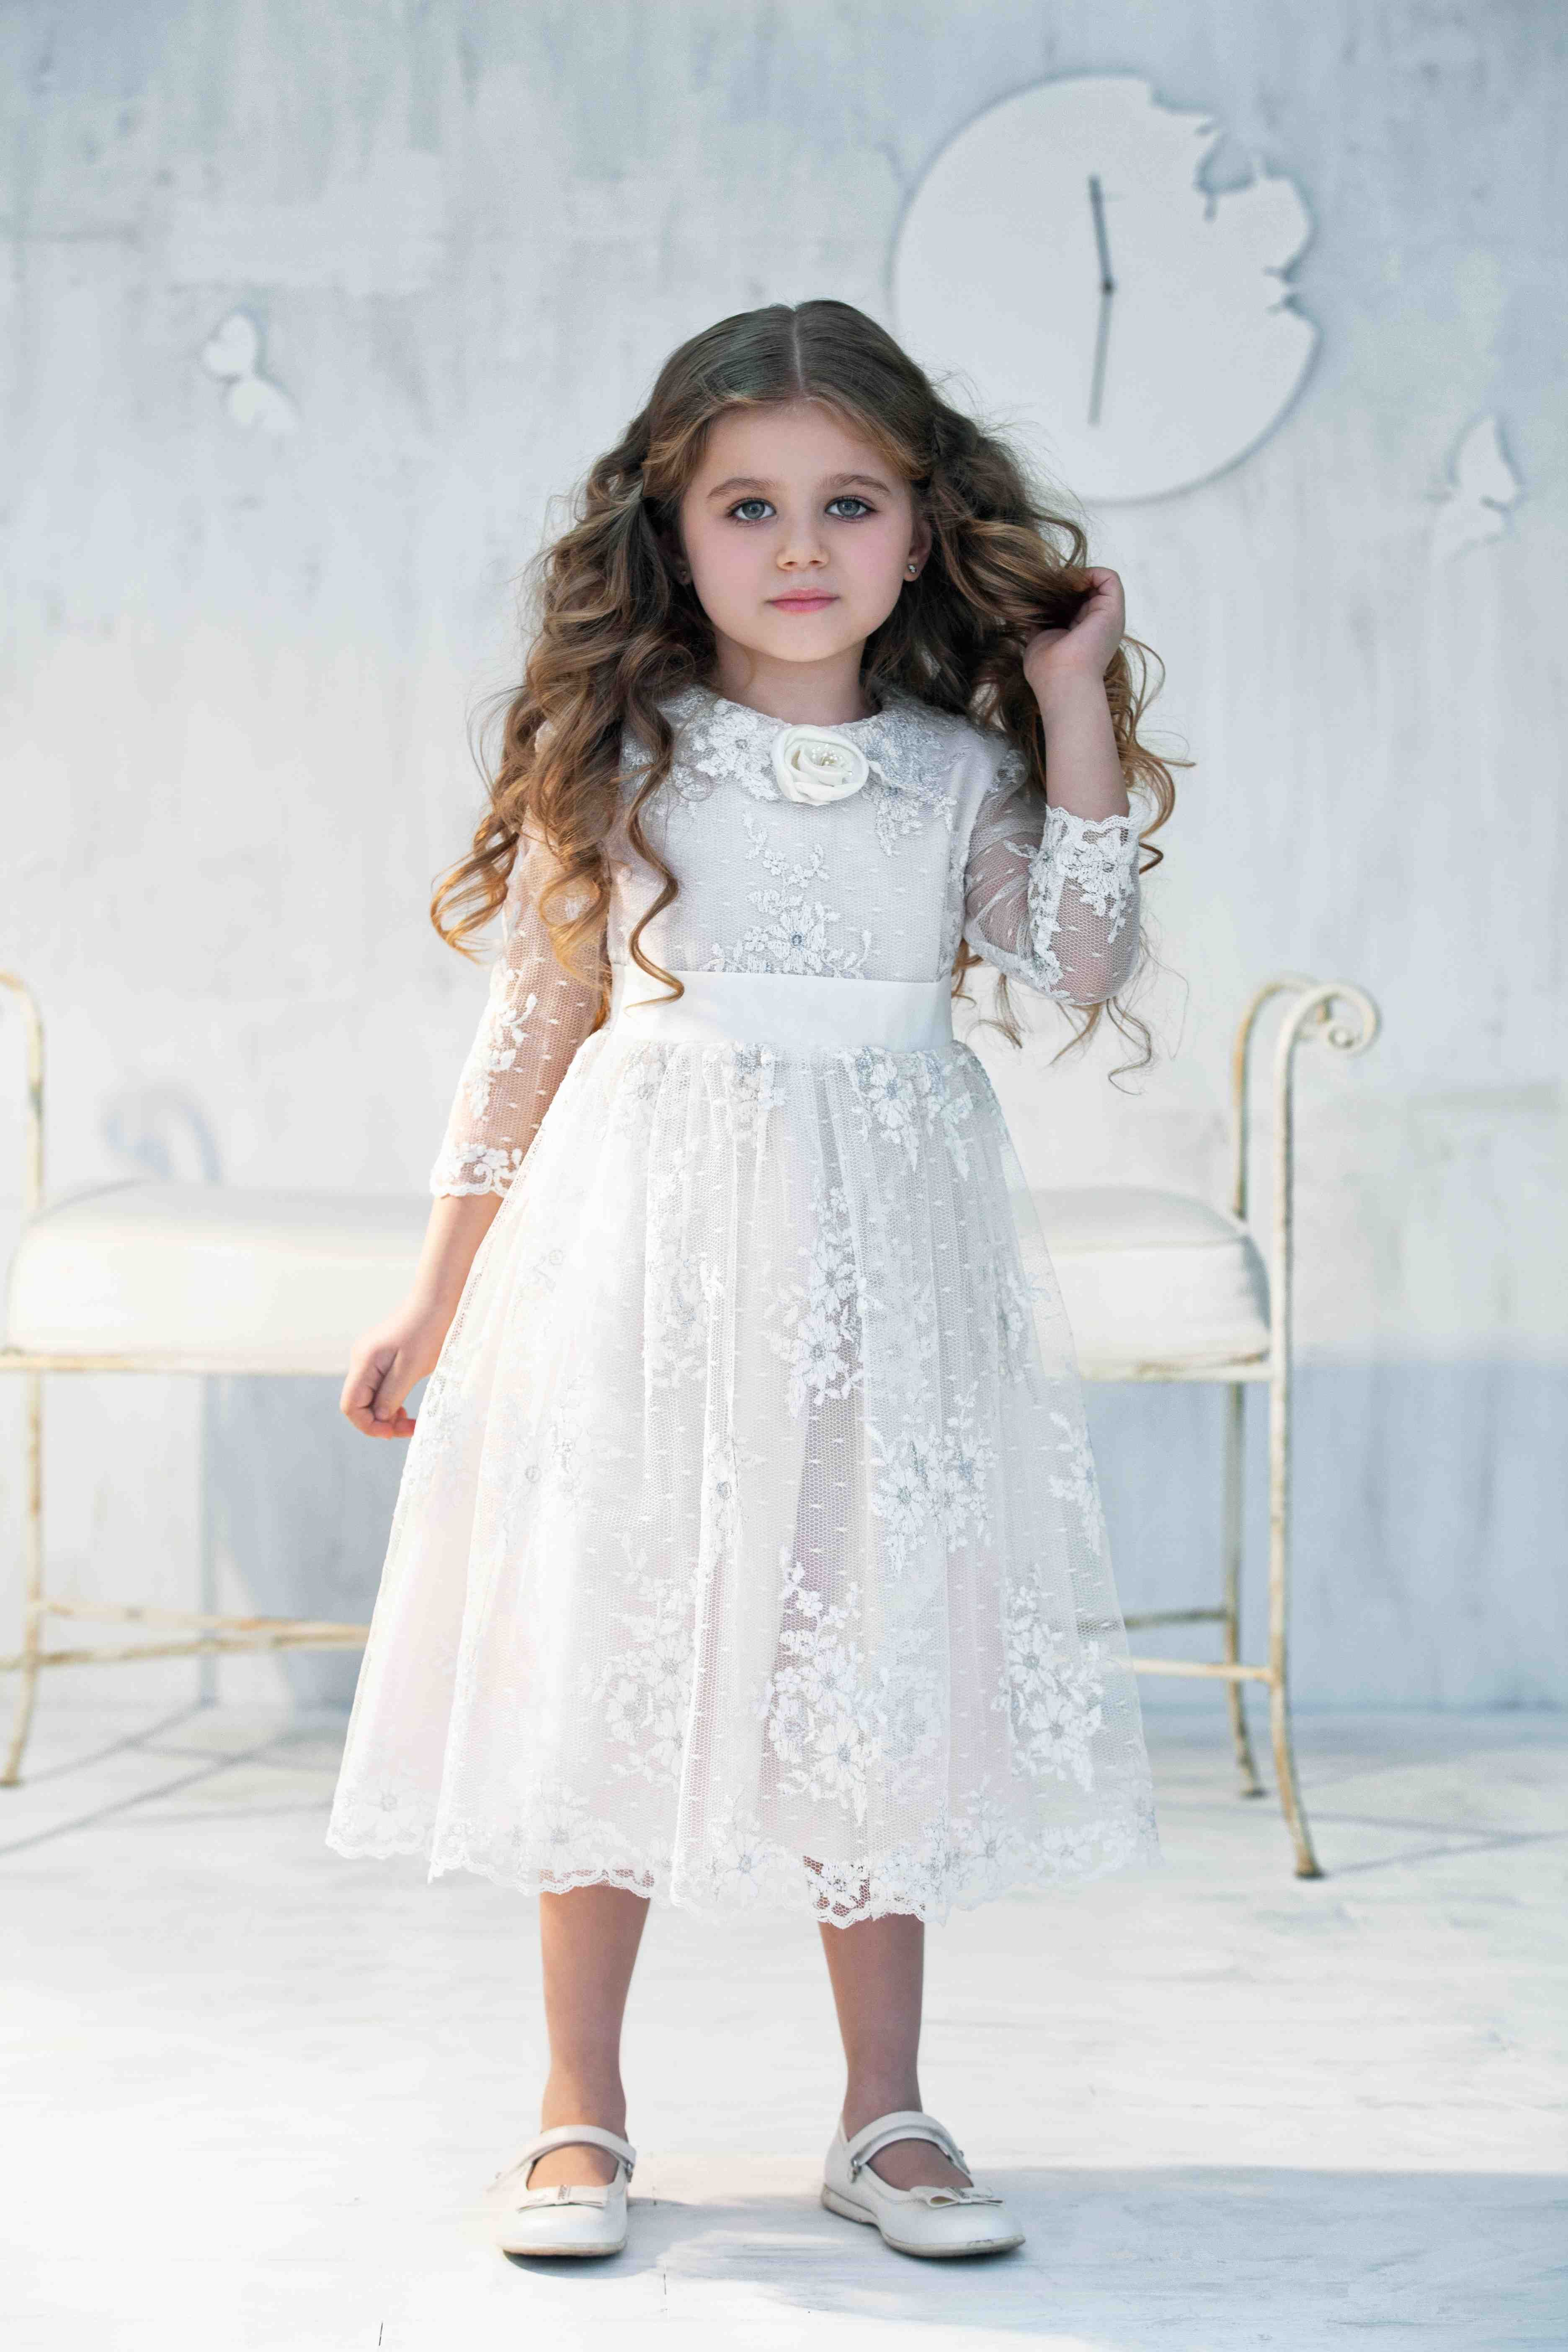 Make the flower girl at your wedding feel like a princess with these